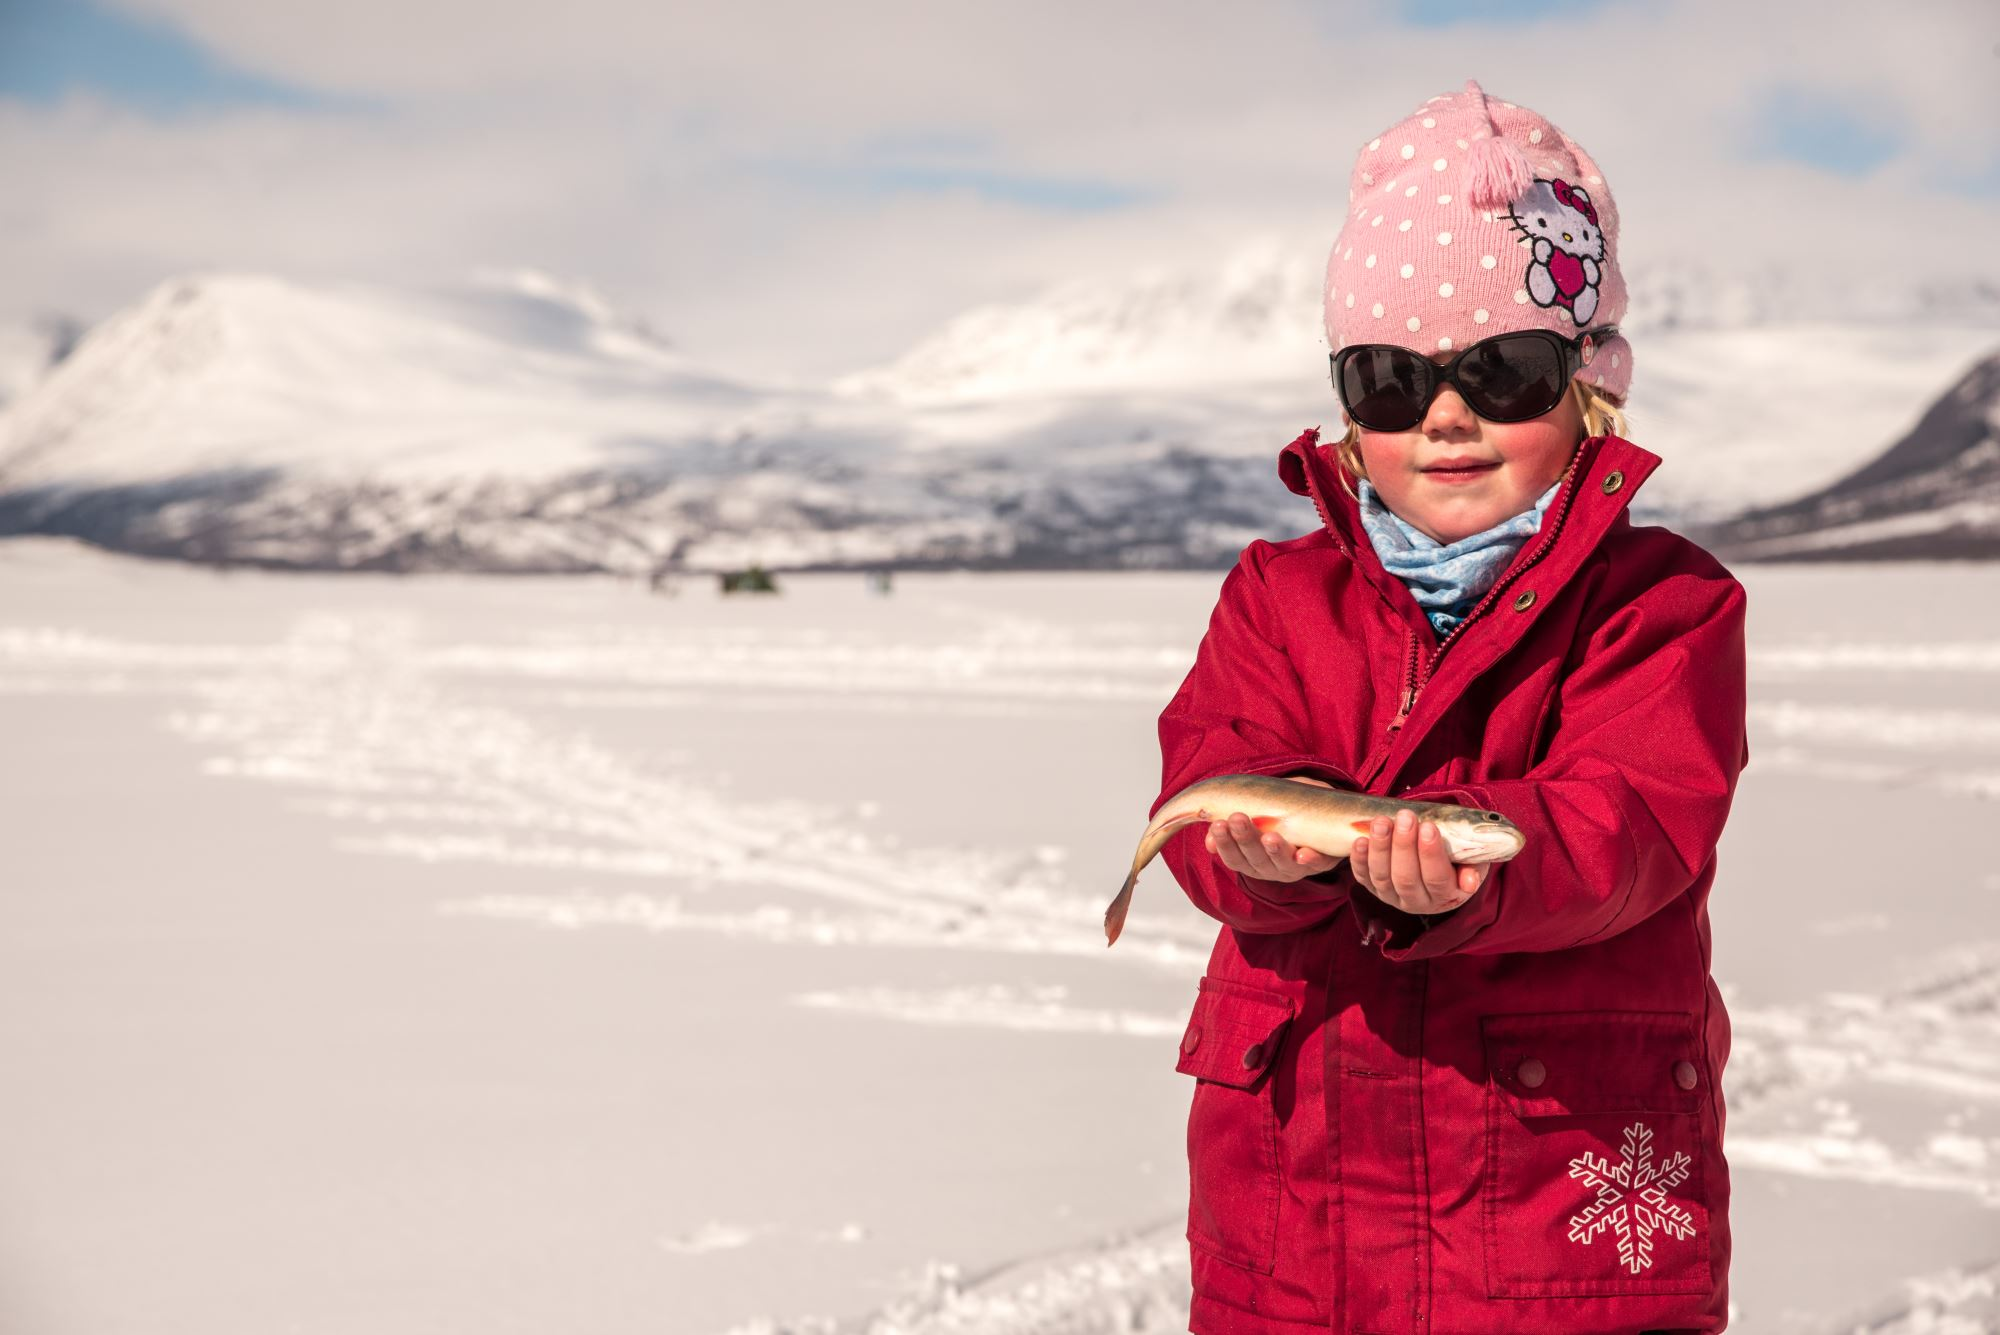 Ice fishing with your personal guide